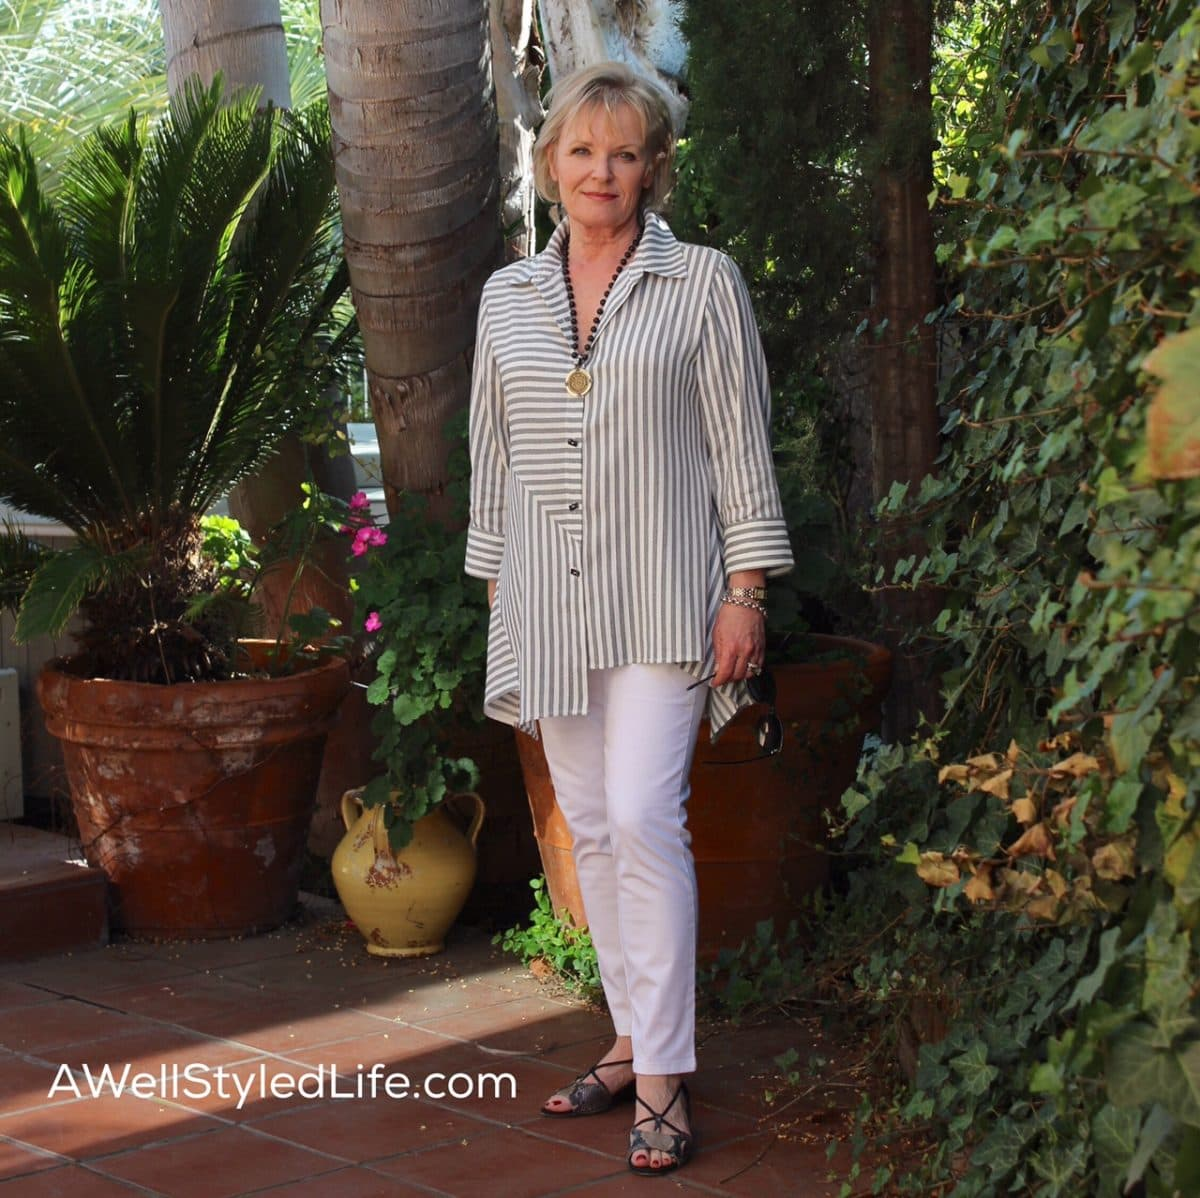 white swan single men over 50 Purchase your wonderwink women's lab coat at lydia's uniforms white cross scrubs white swan scrubs for over 50 years and three generations.